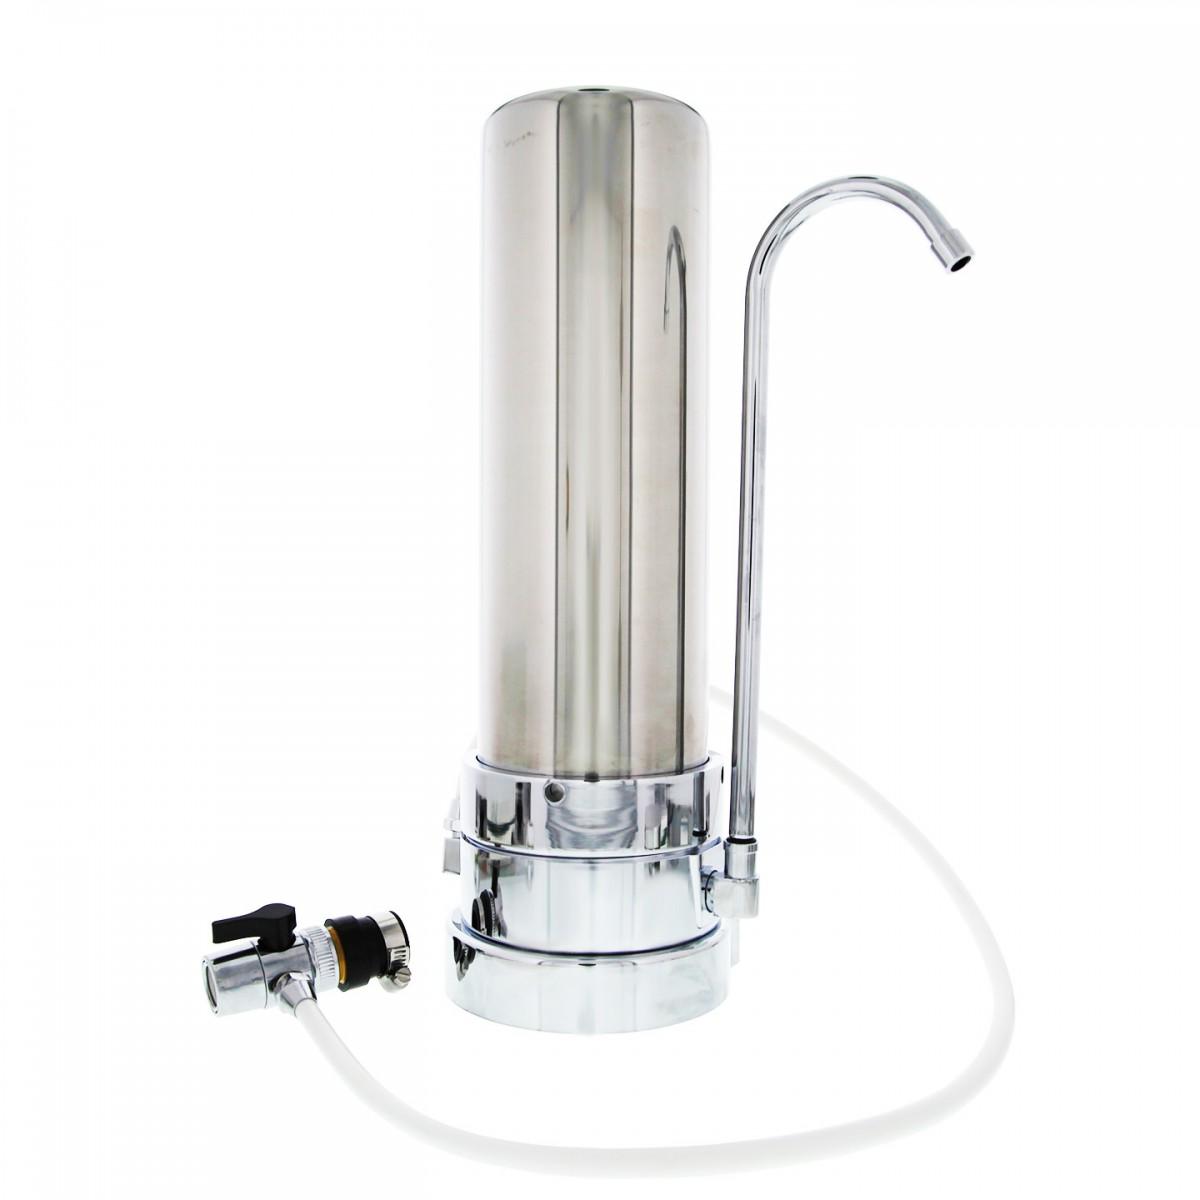 Tier1 CT-SS-1000 Countertop Drinking Water Filter System ...